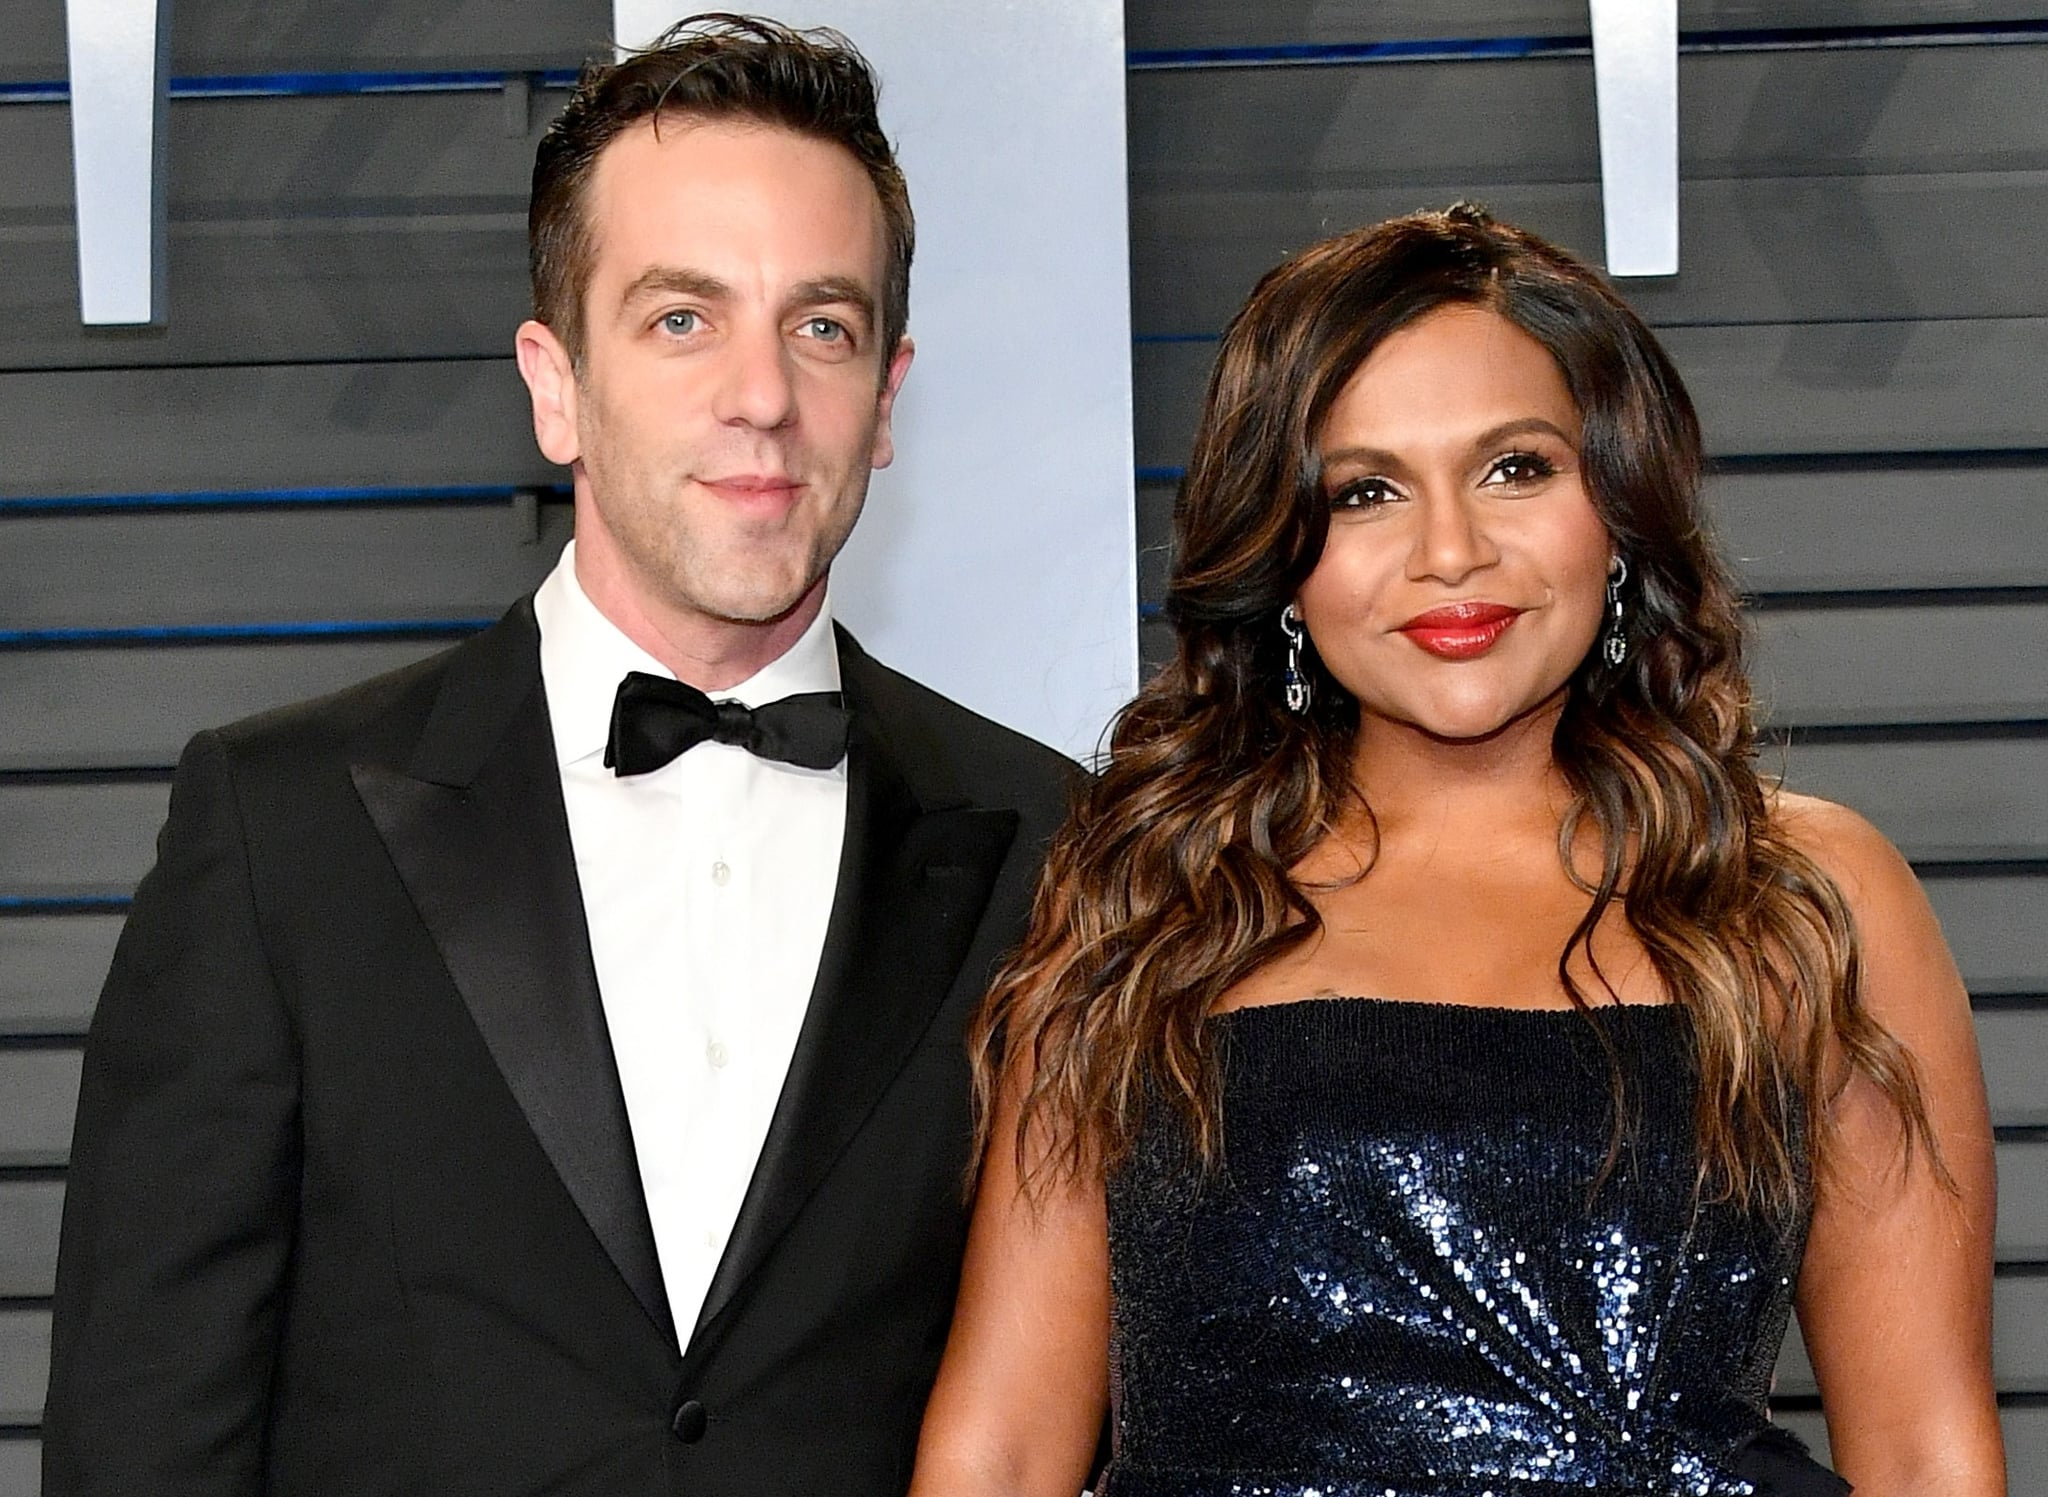 who is mindy kaling dating now